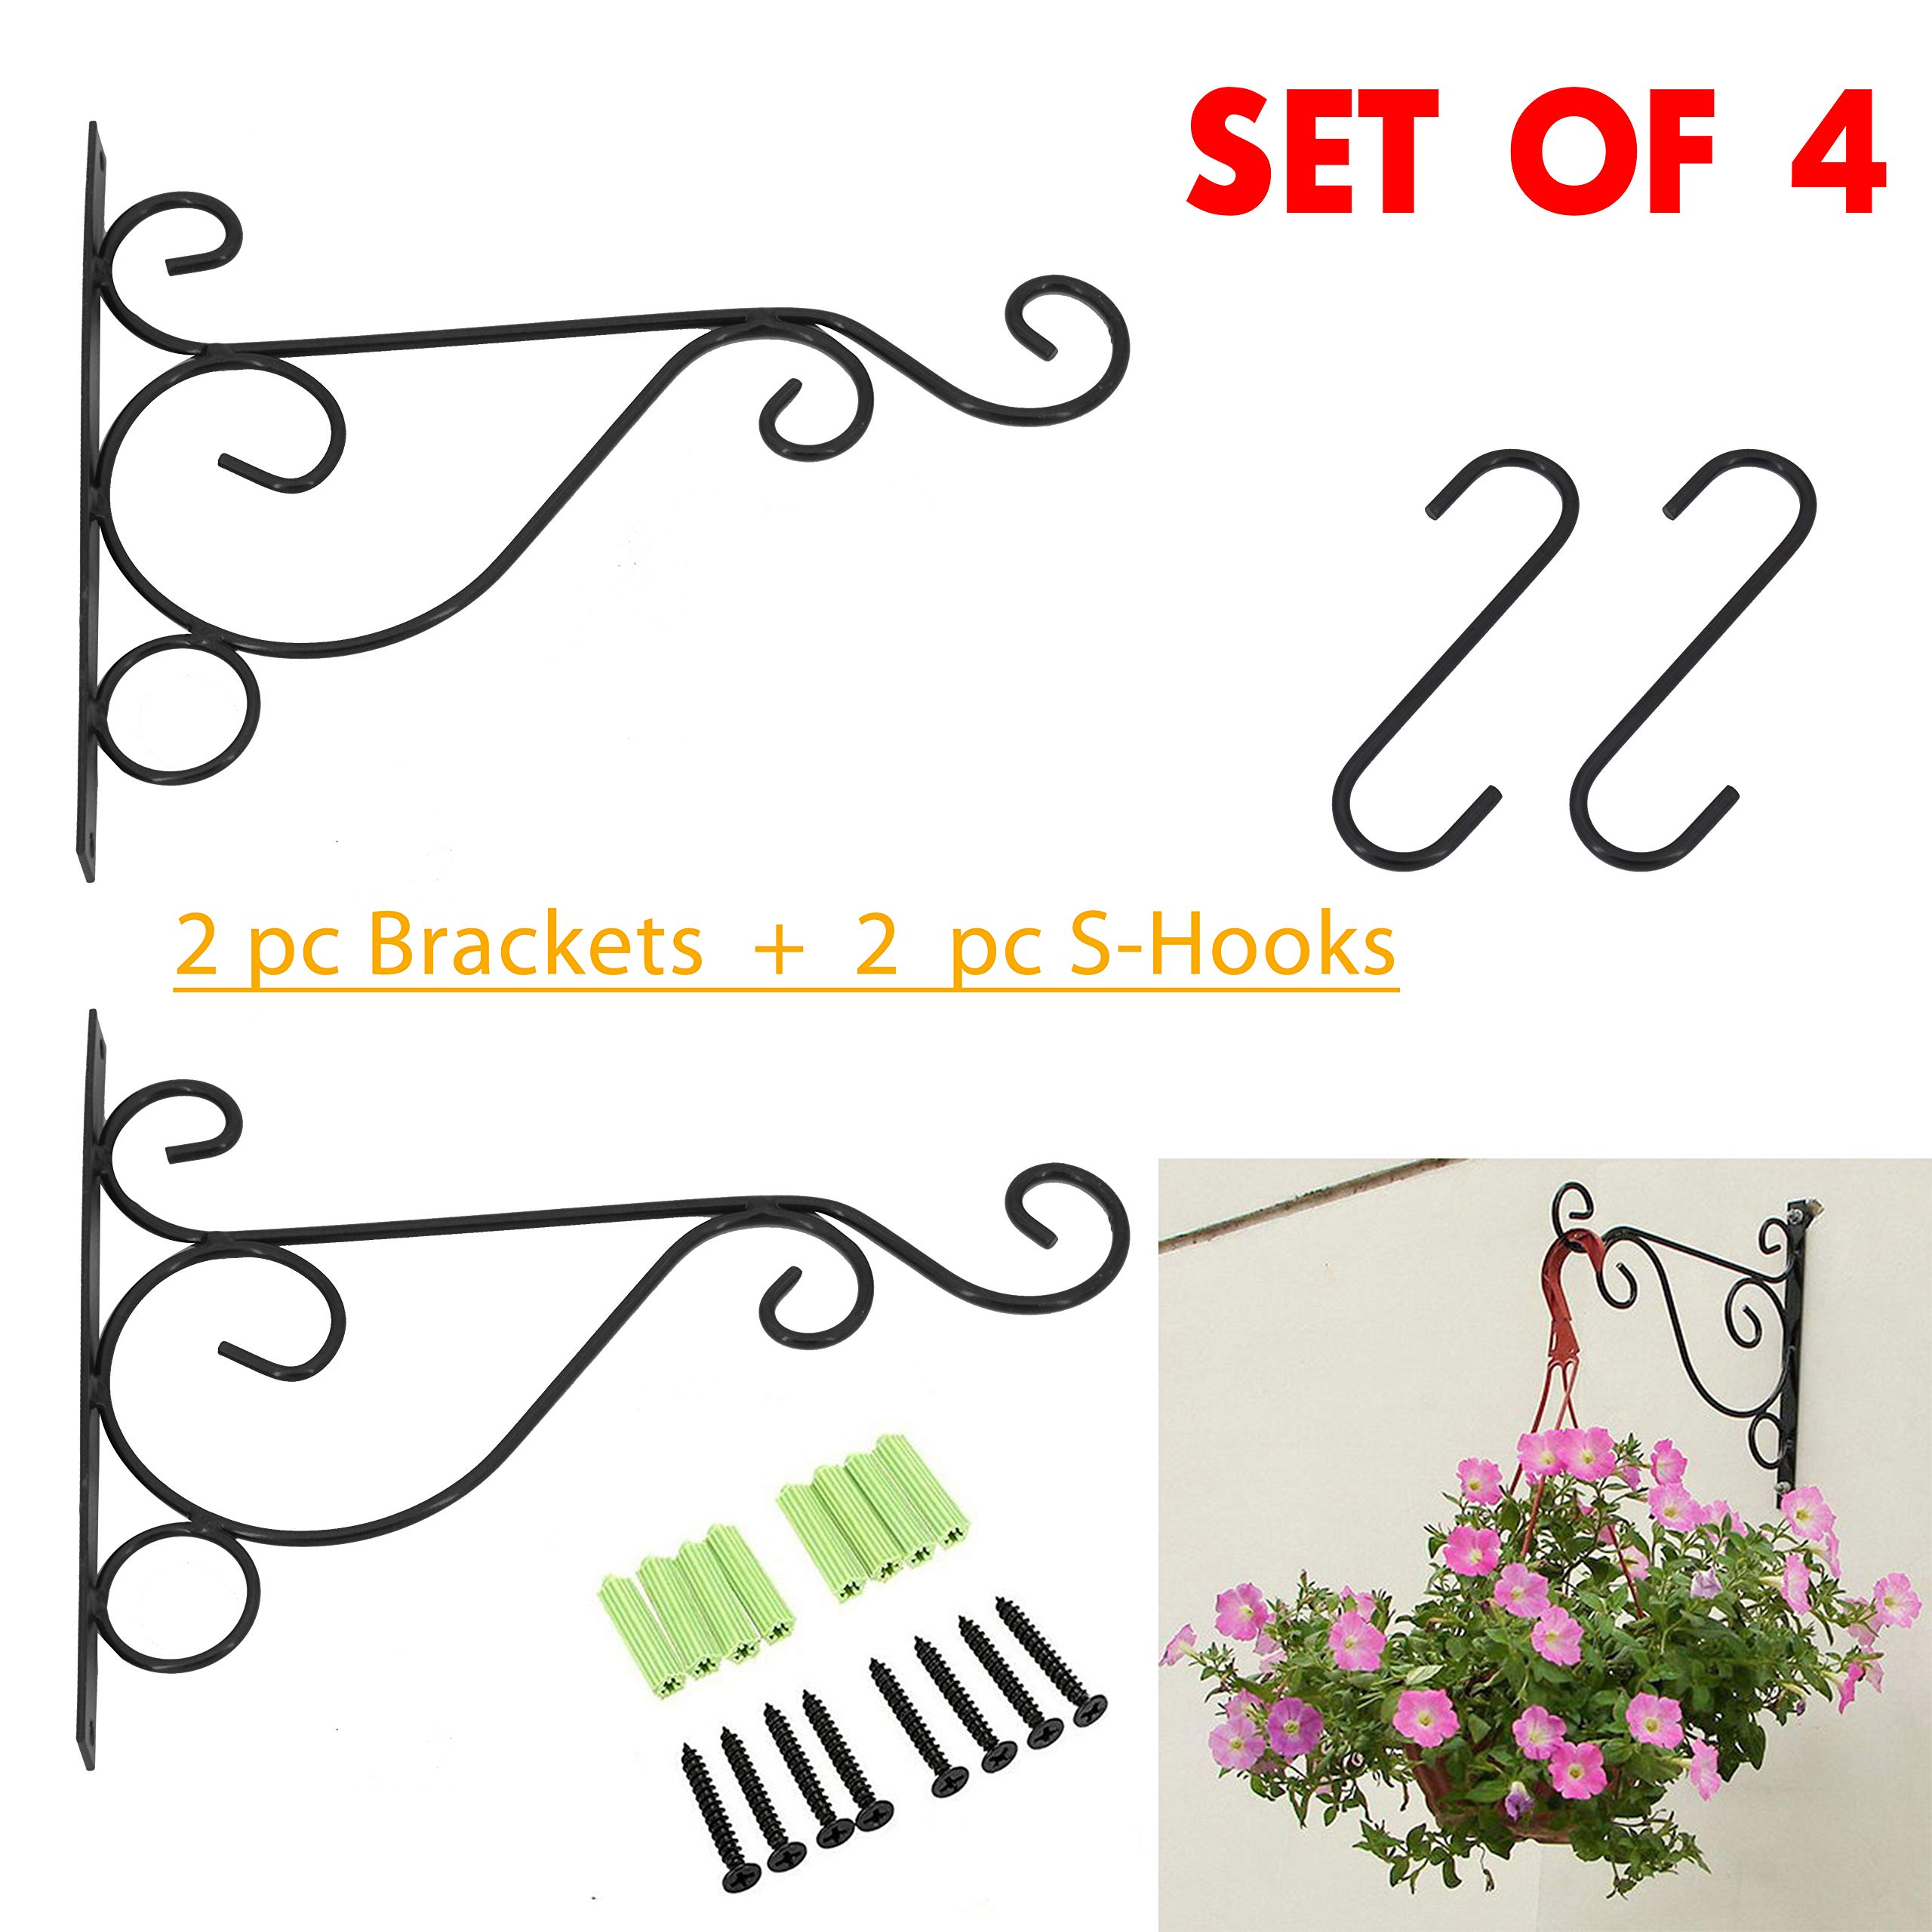 2 PCS Wall Hanging Plants Bracket Premium Thicken Iron Decorative Planter Hook with 2 PCS 6'' S-Hooks for Lanterns,Planters,Hanging Bird Feeders,Ornaments (Black) by OVOV